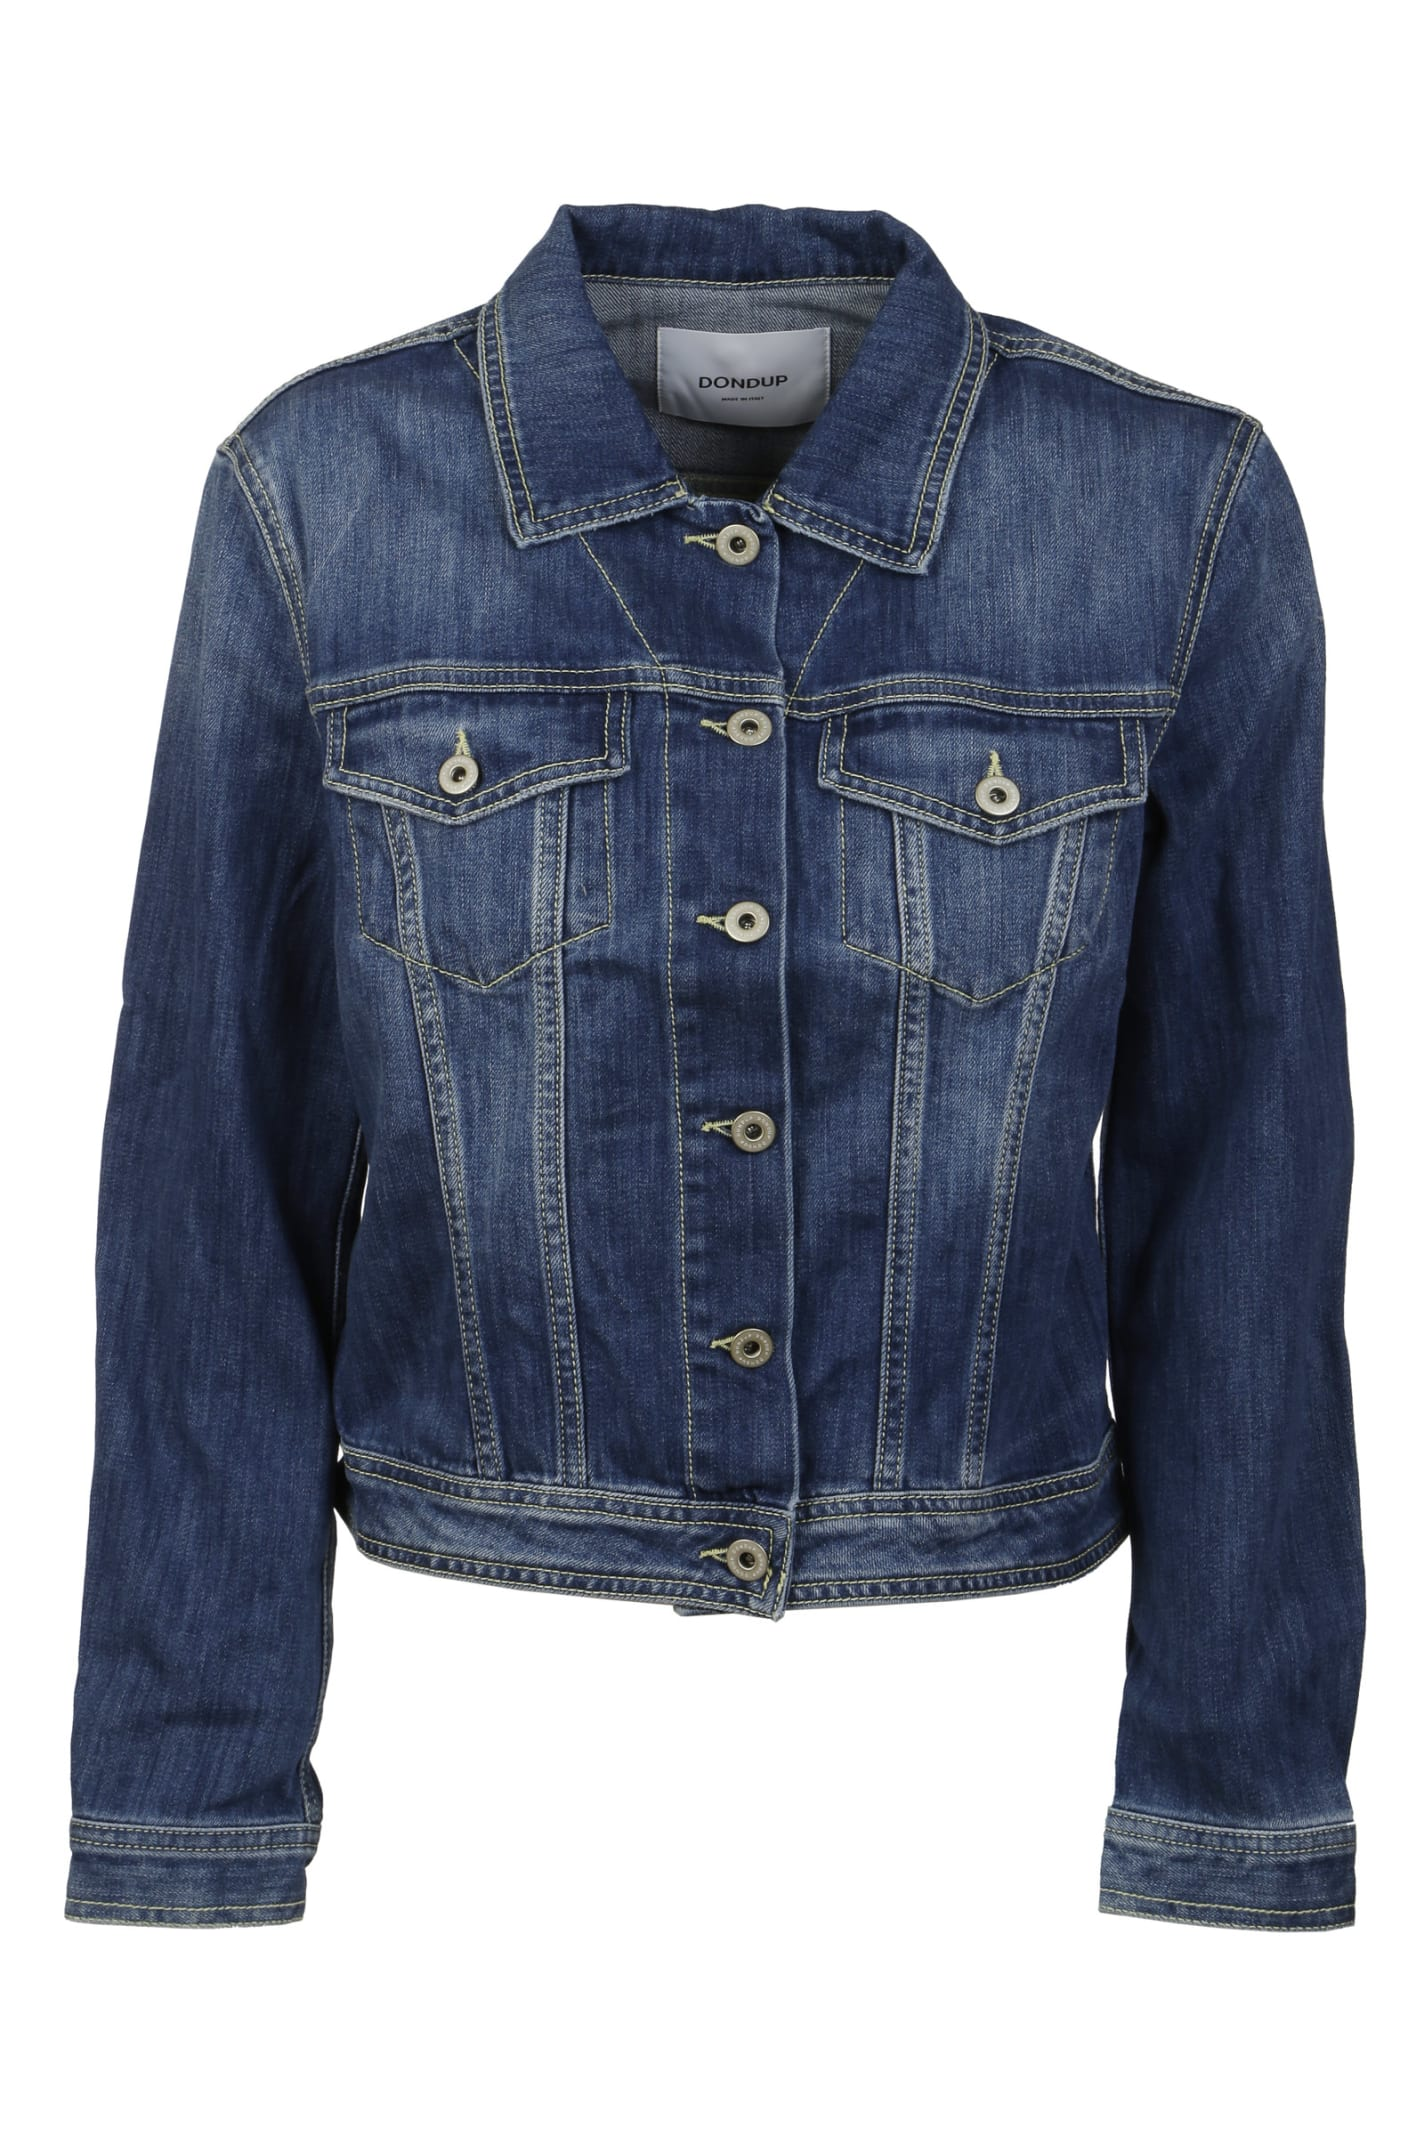 Dondup Denim Classic Jacket